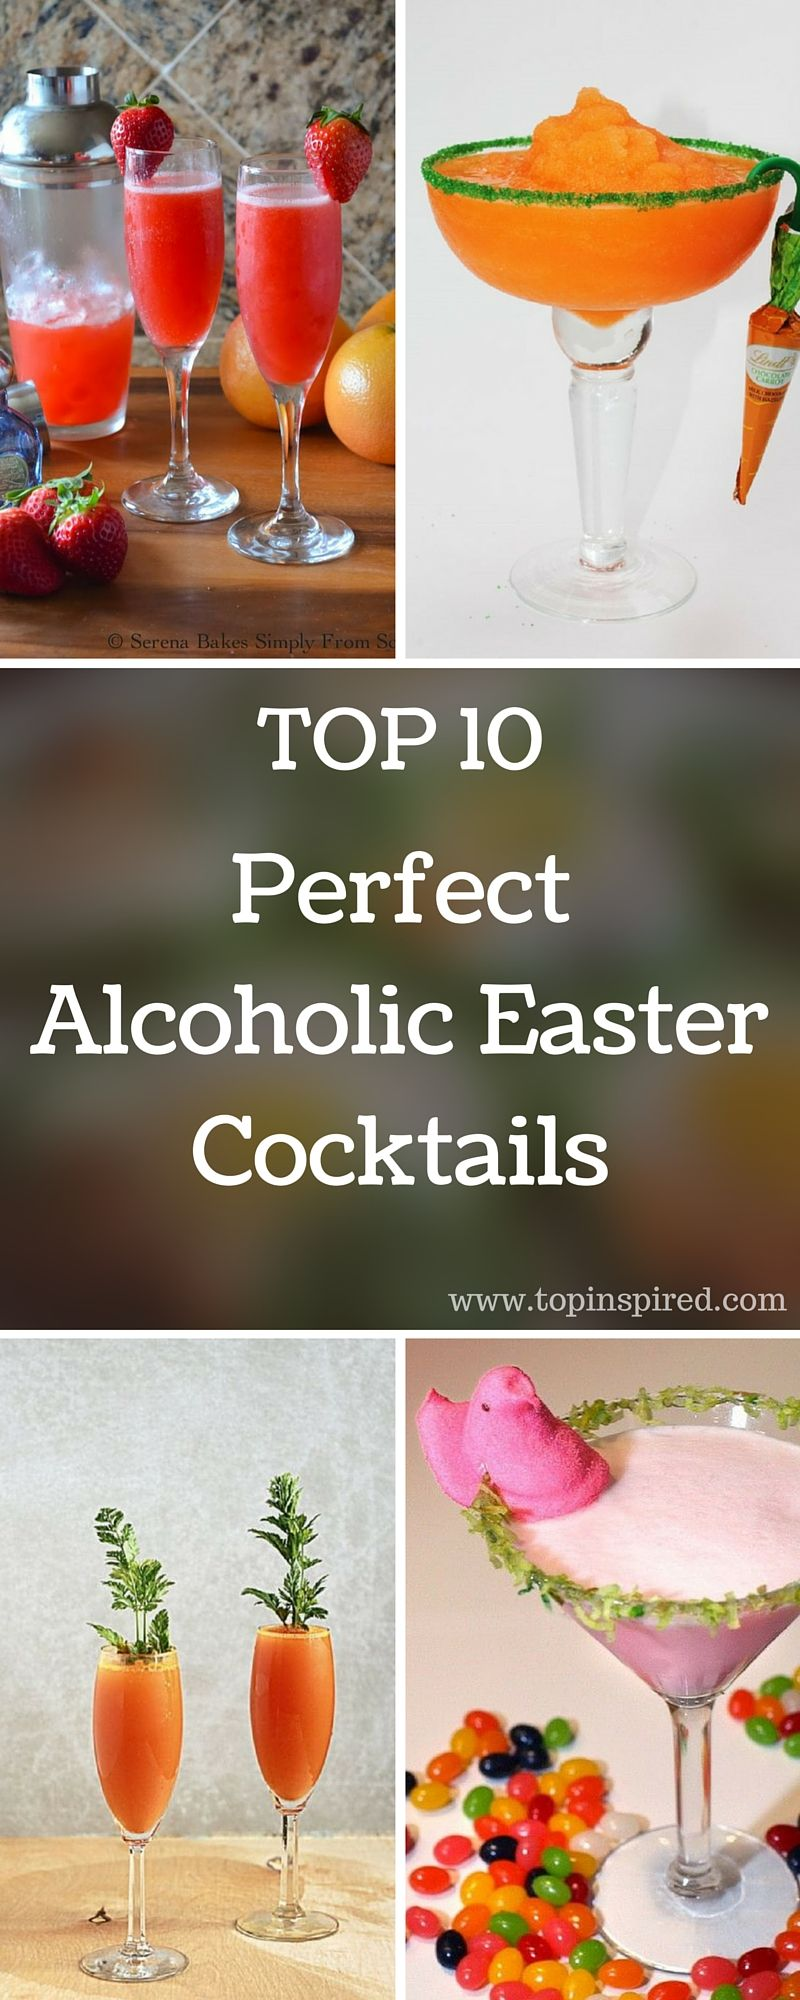 Top 10 Perfect Alcoholic Easter Cocktails Easter Cocktails